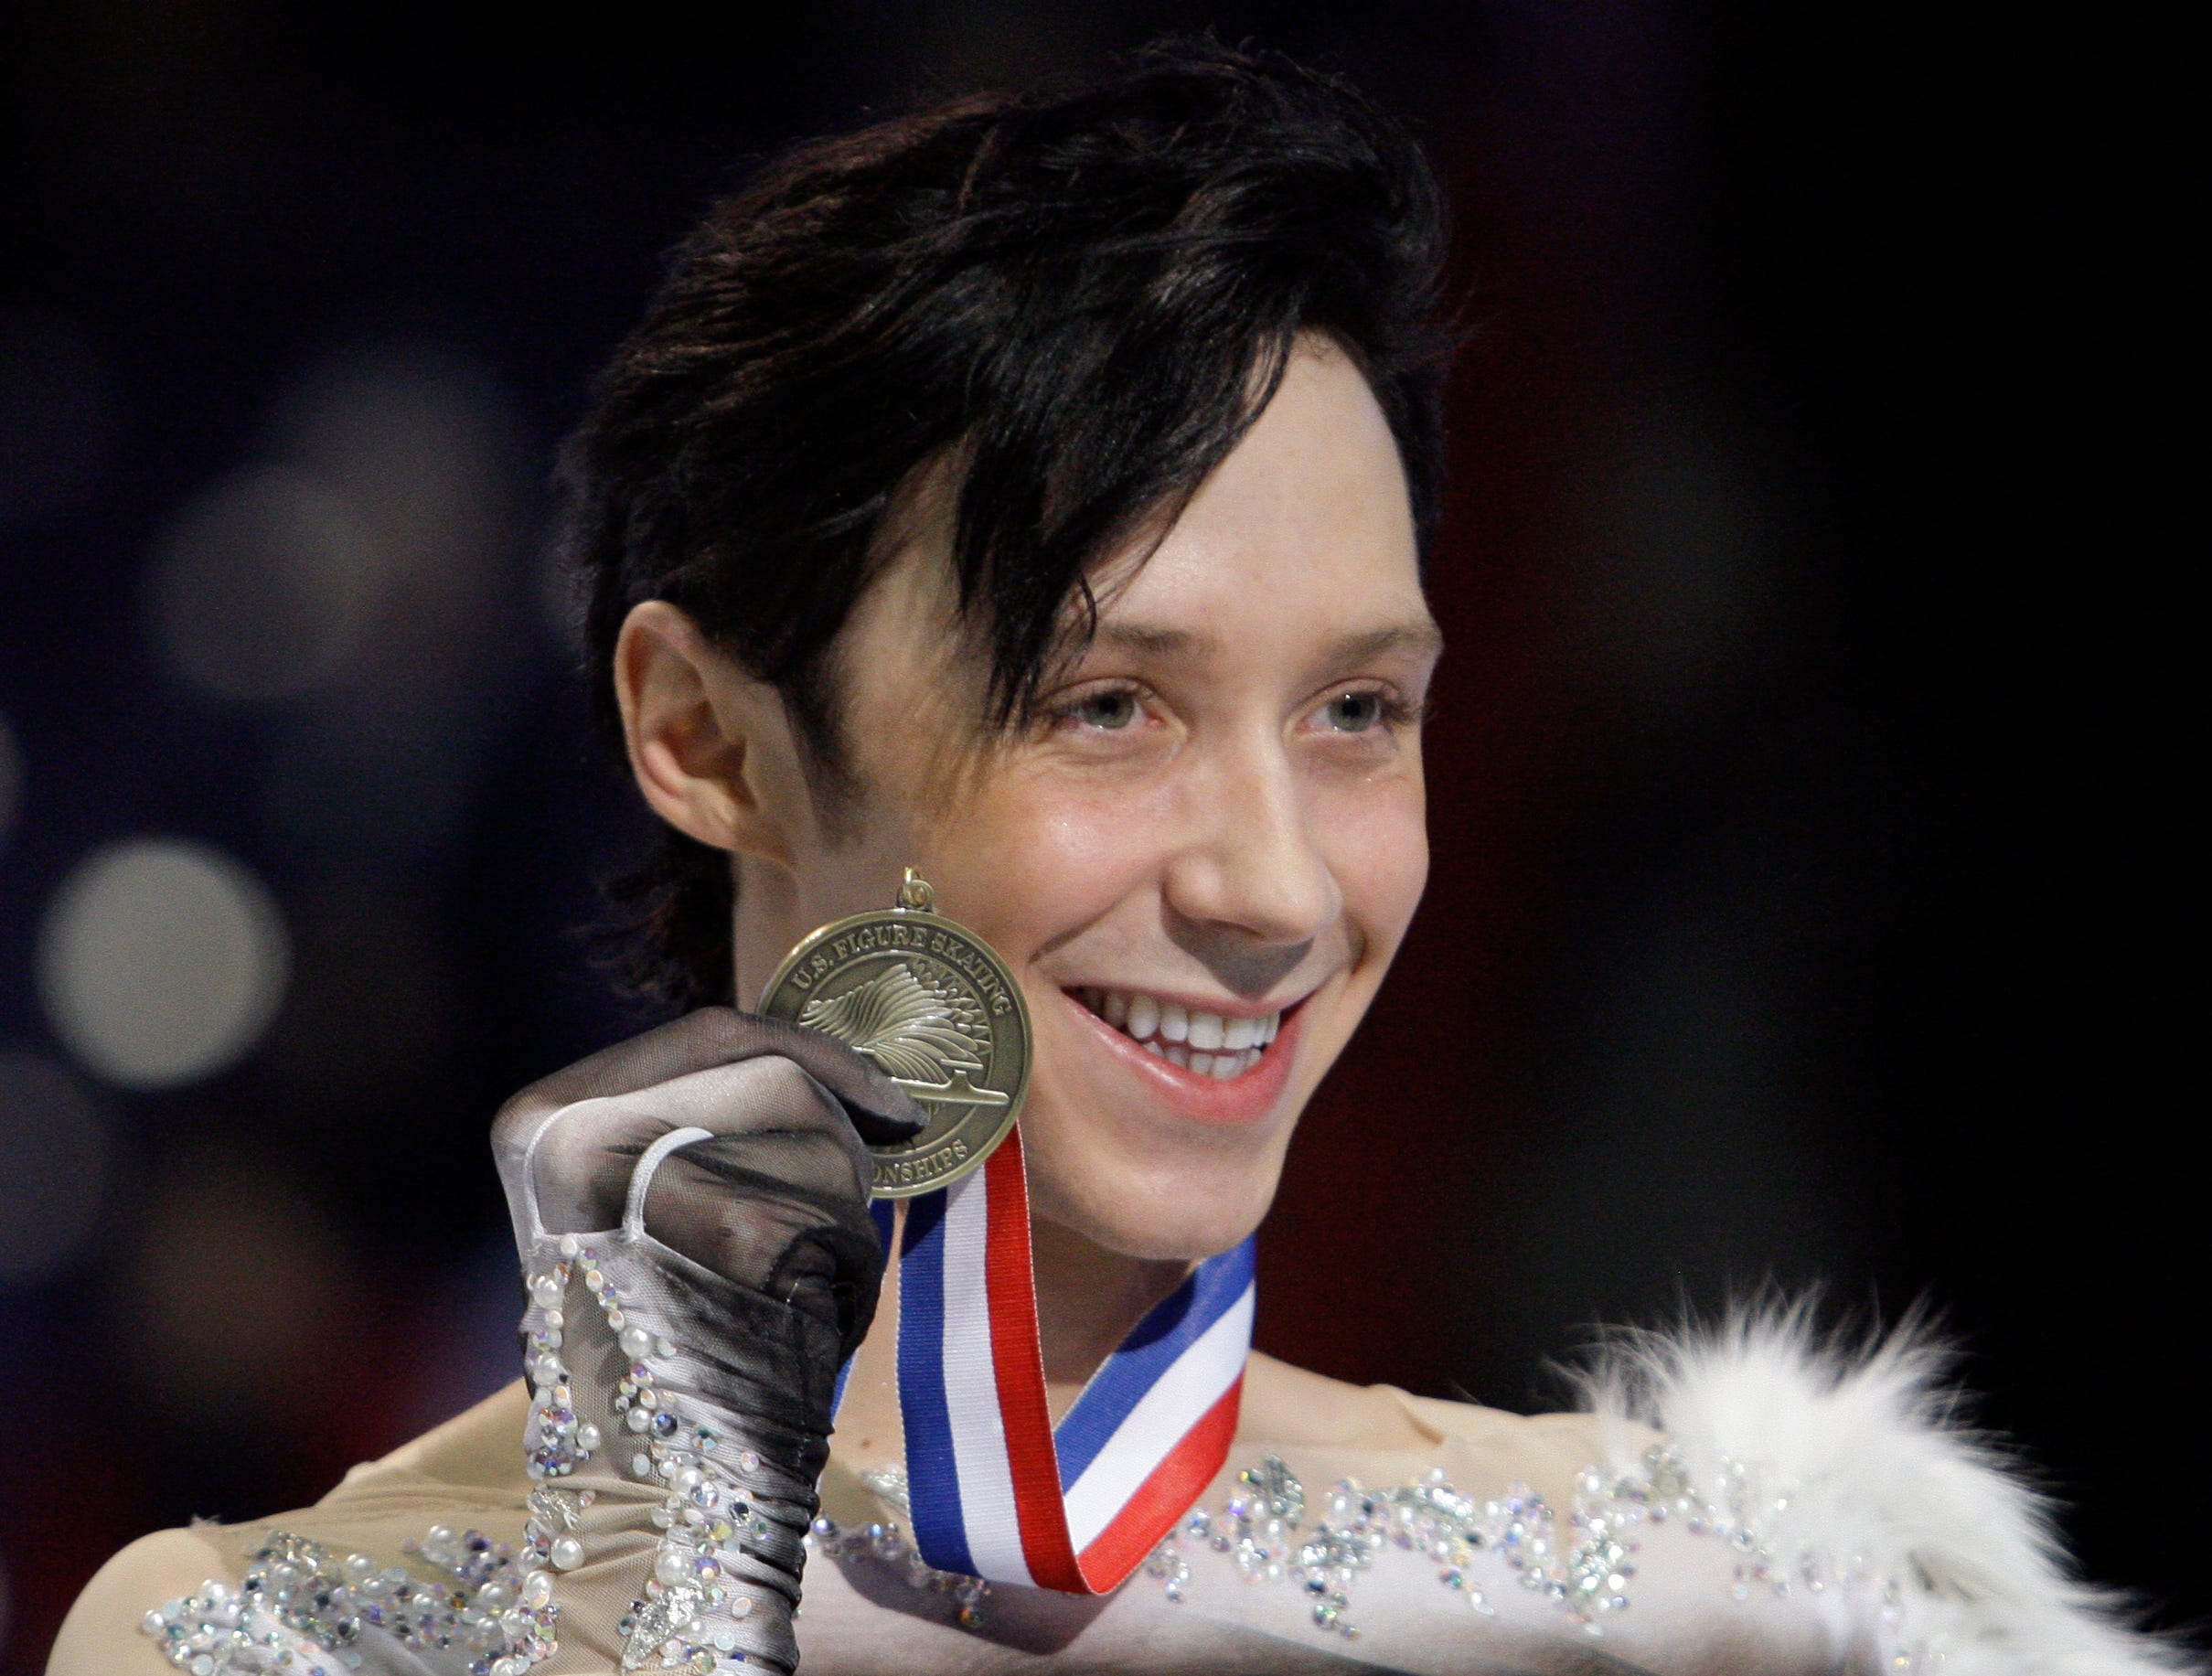 Johnny Weir shows off his medal for third place during the men's free skate at the U.S. Figure Skating Championships in Spokane, Wash., Sunday, Jan. 17, 2010.